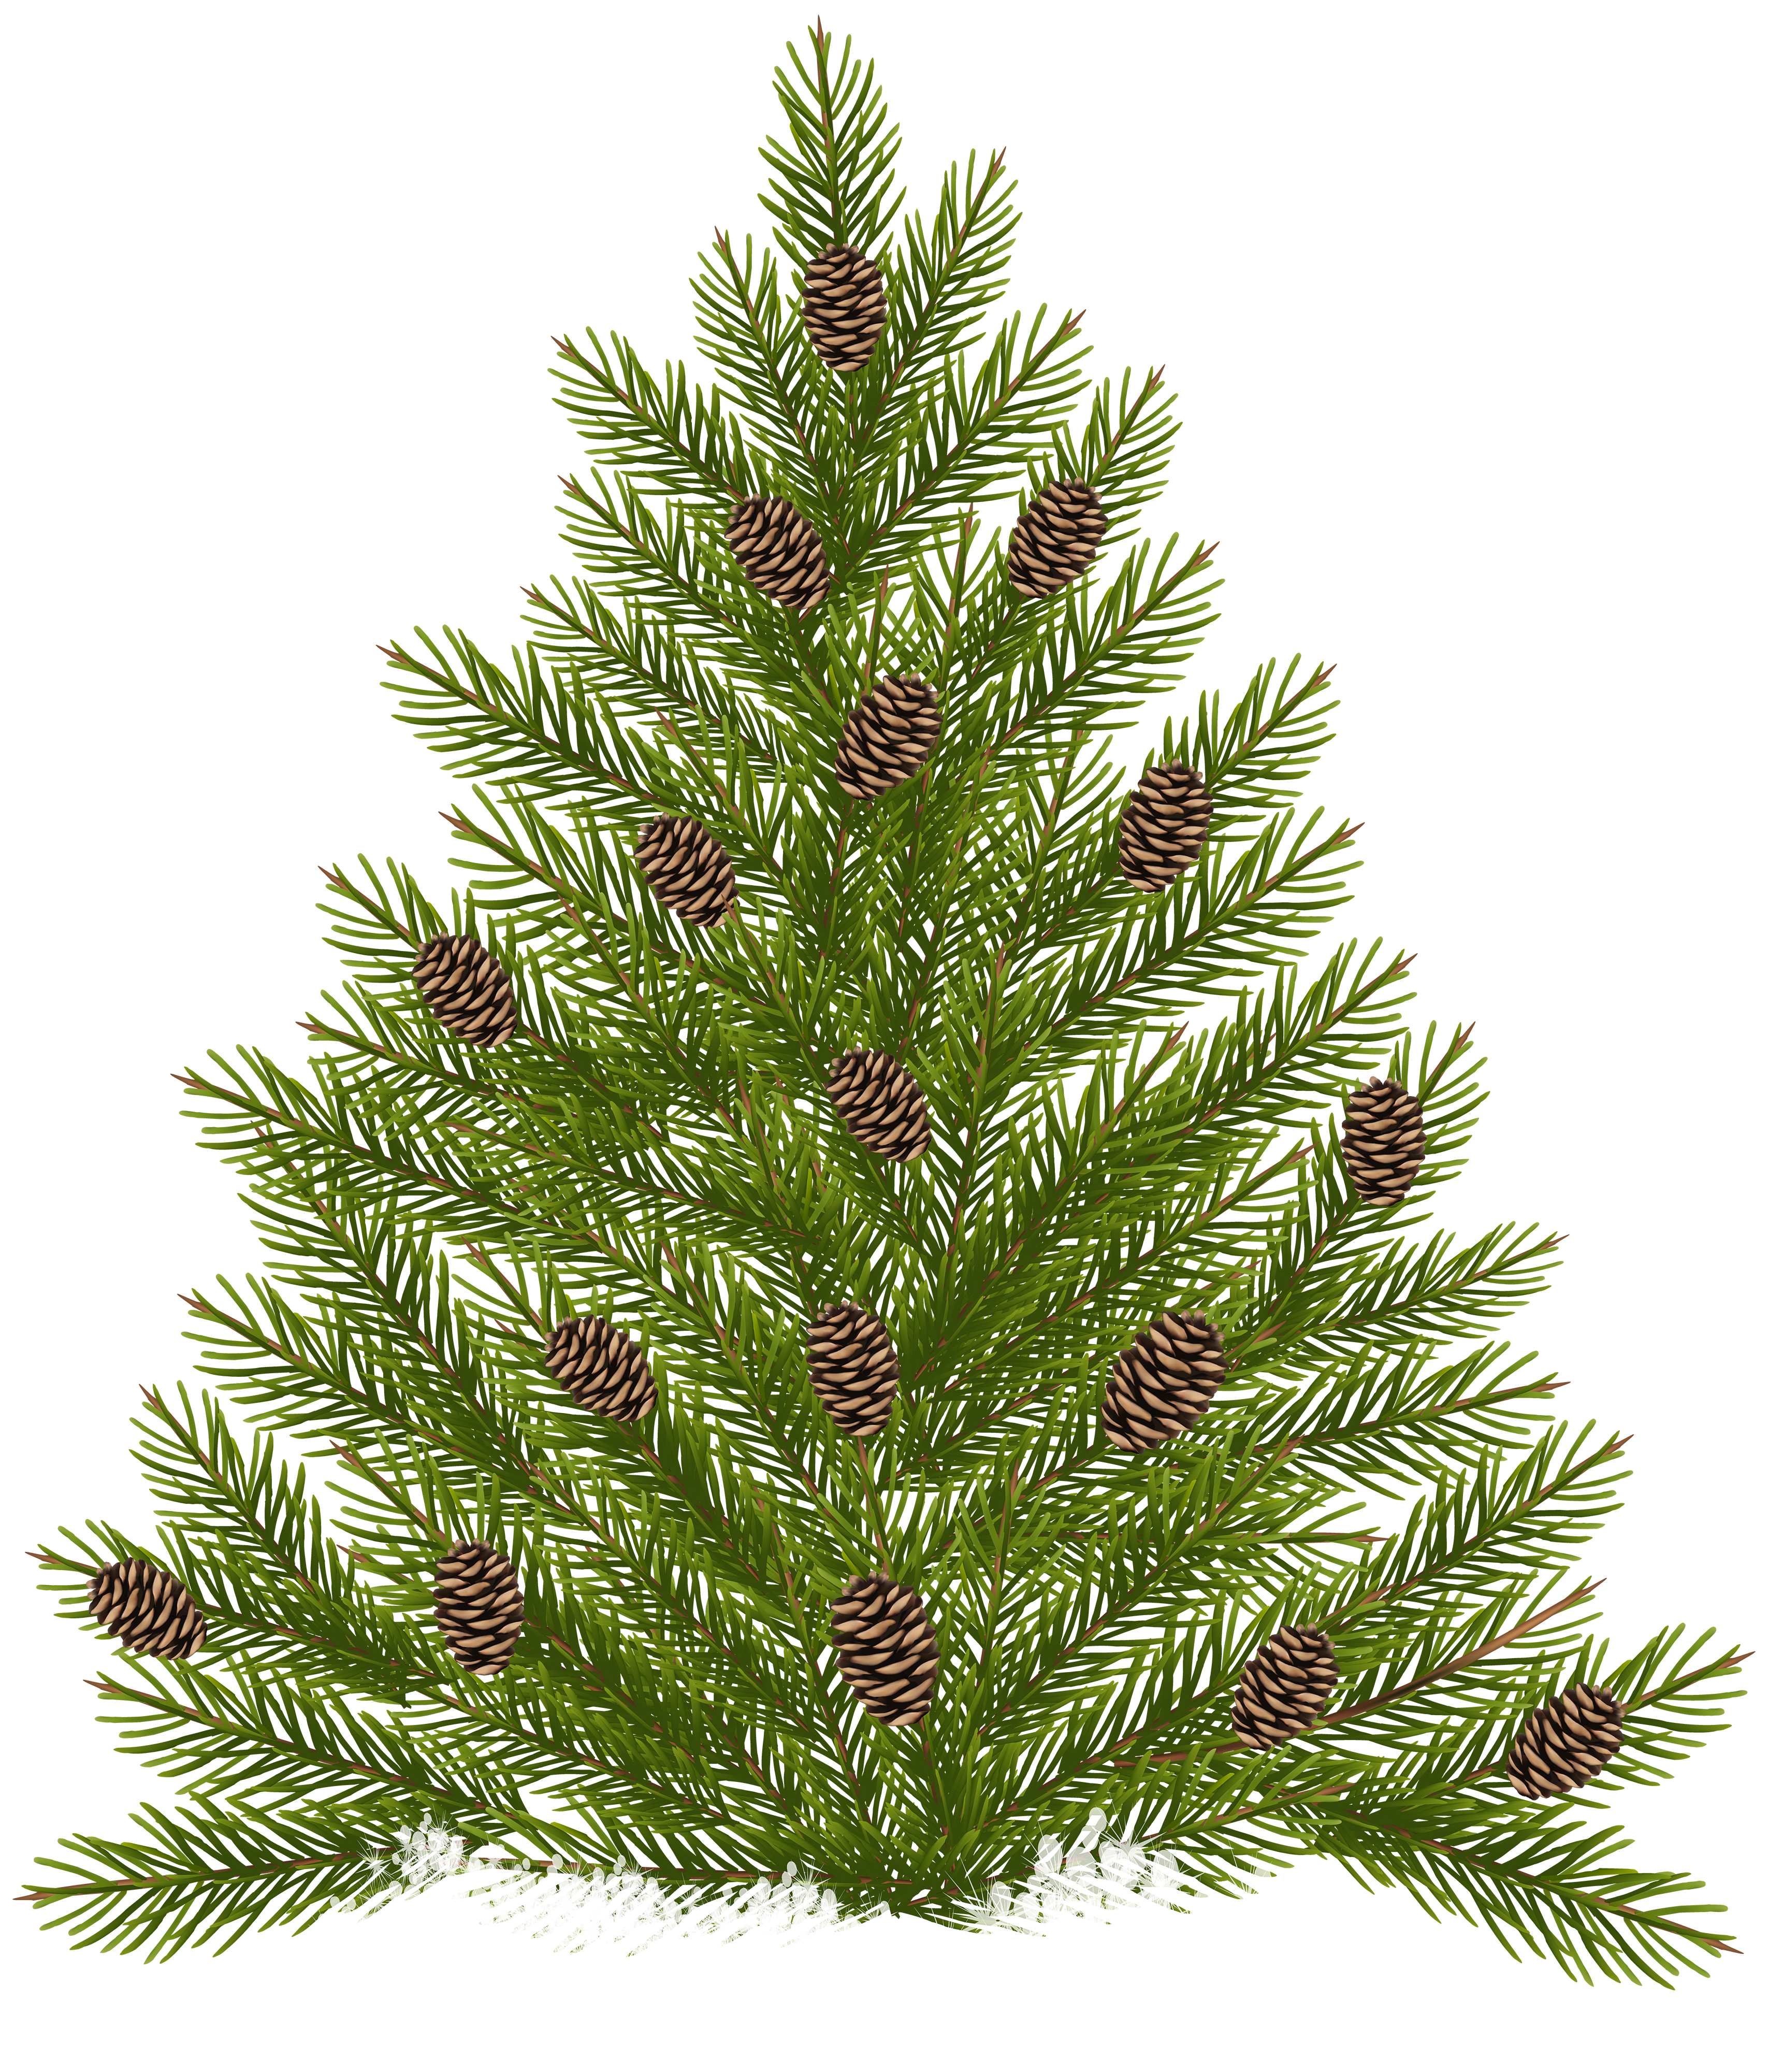 Pine tree border clipart image freeuse stock Pine Tree with Cones Transparent PNG Clip Art | Gallery ... image freeuse stock